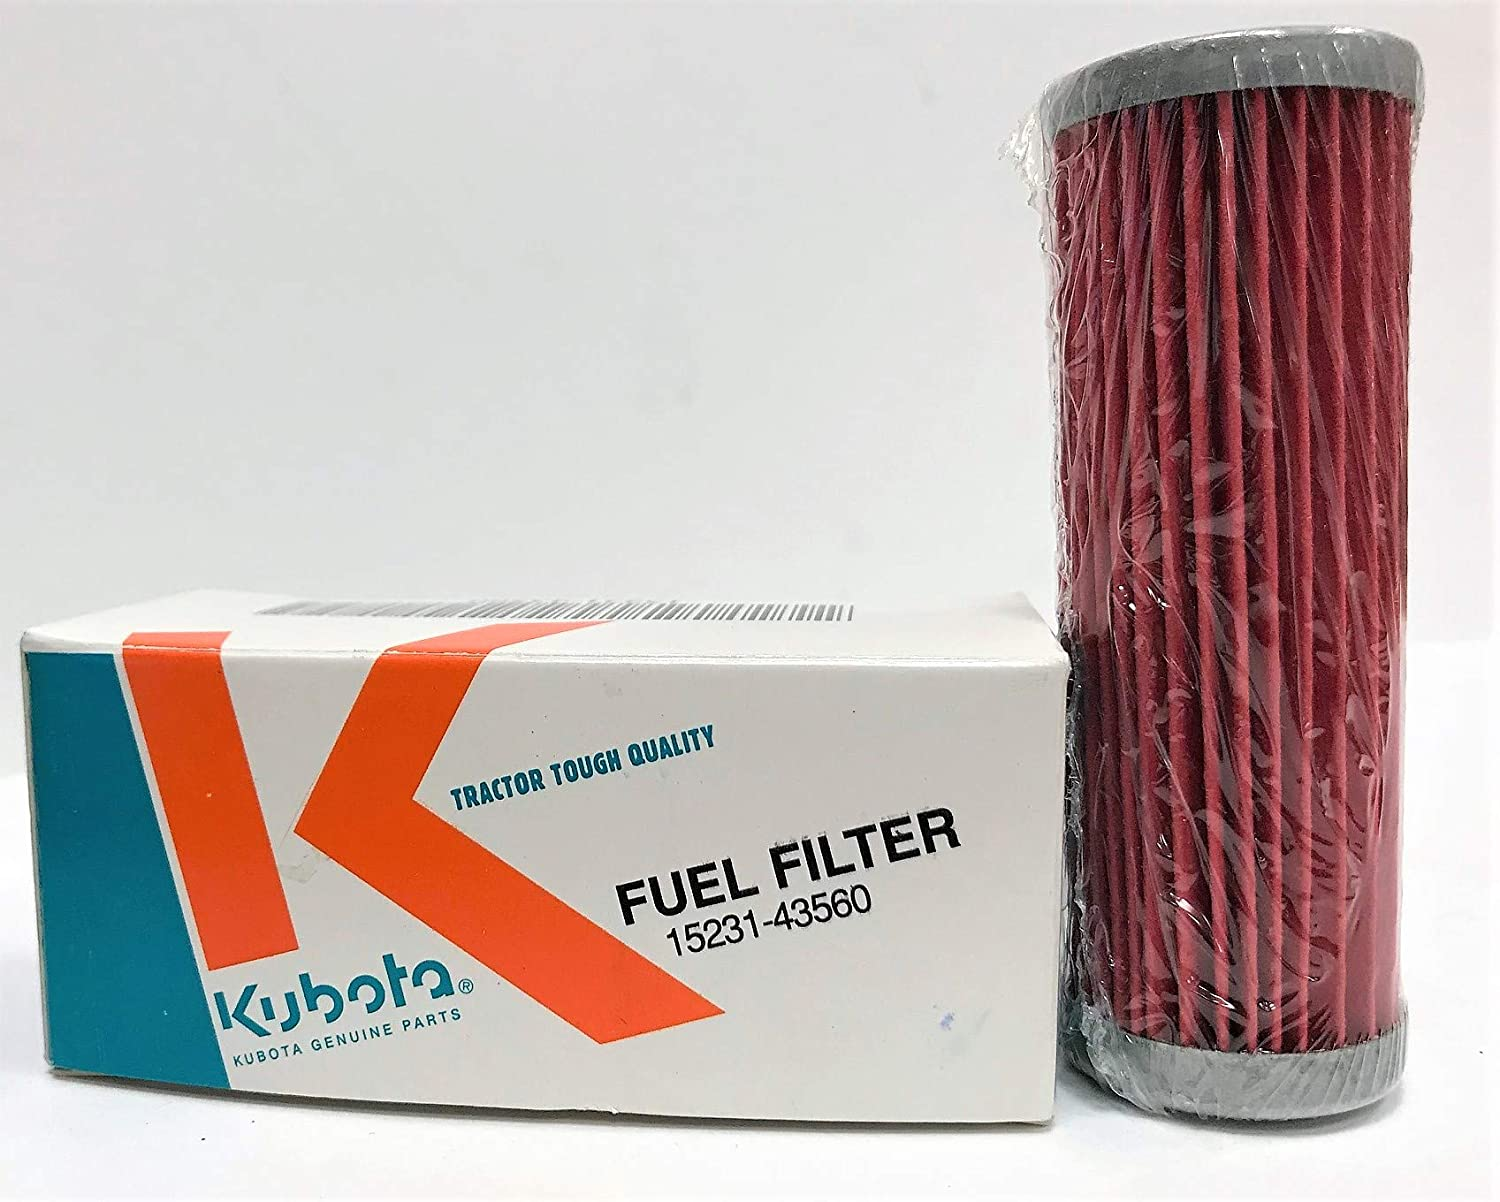 New Oem Kubota Fuel Filter 15231 43560 For G4200 G5200 G6200 B1550 Filters B1550hst B20 Garden Outdoors